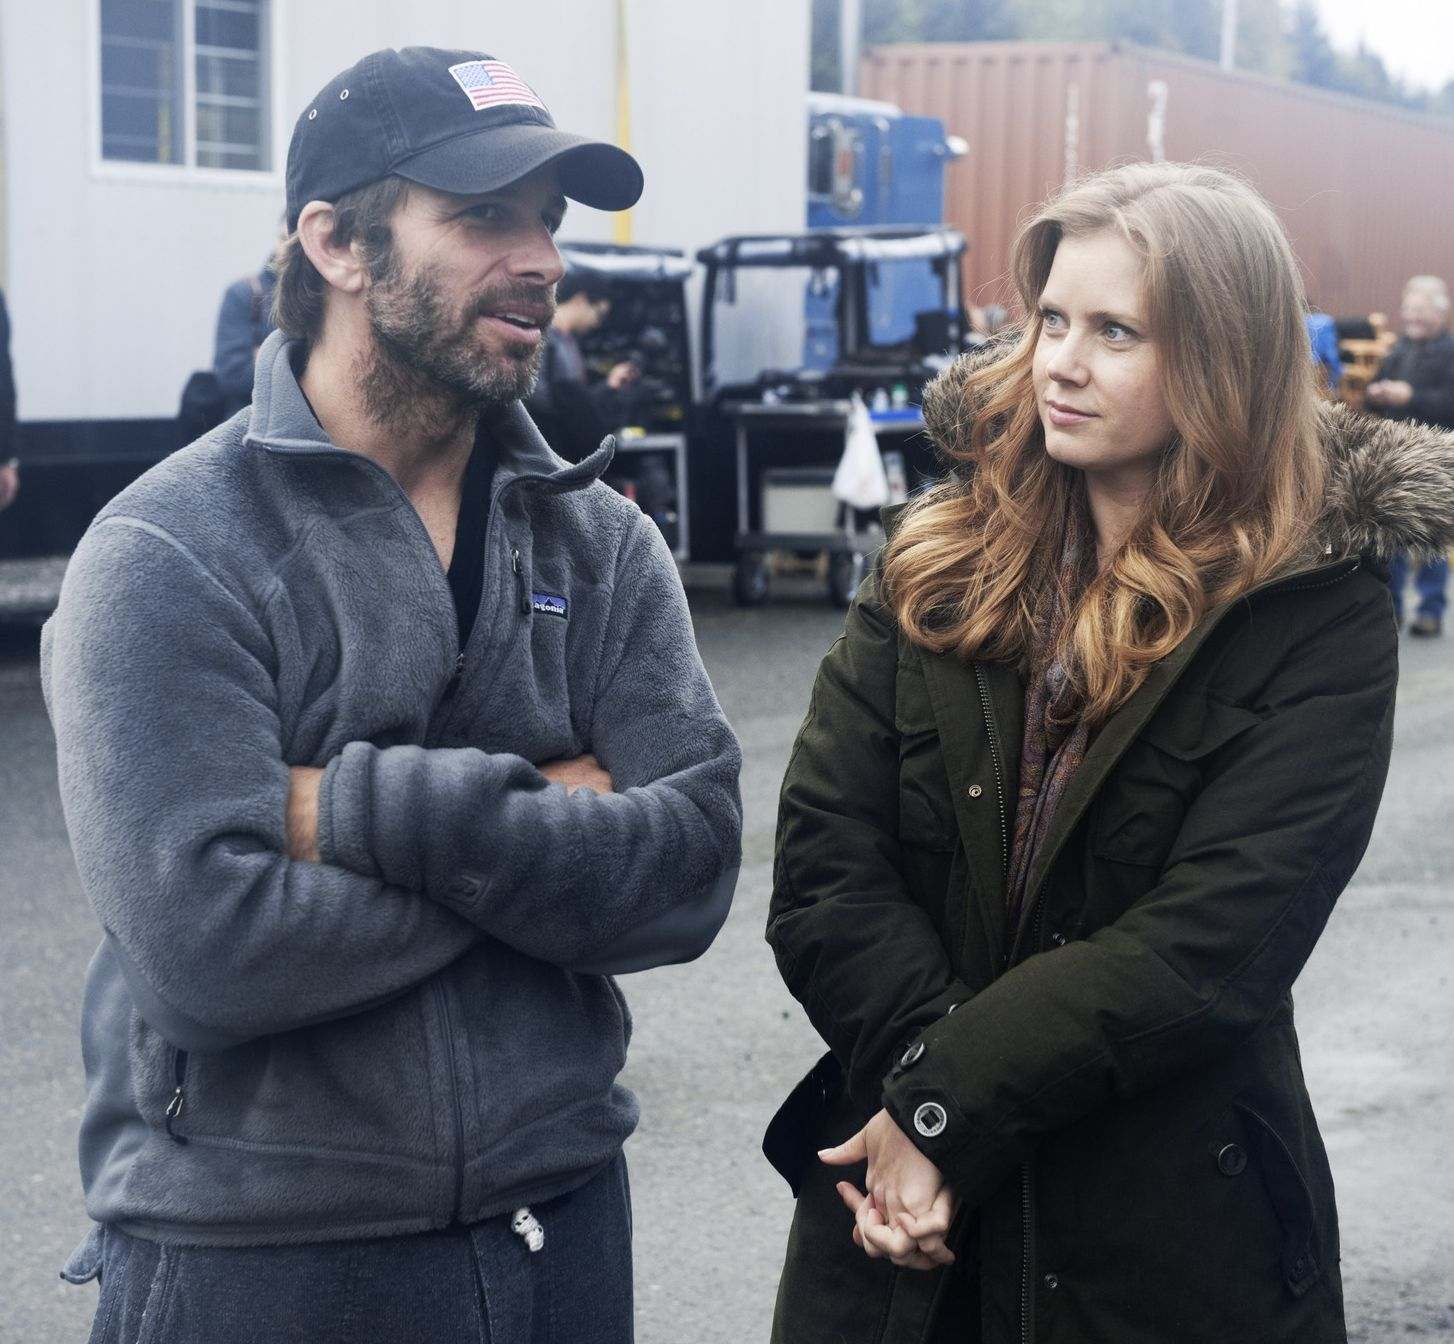 Zack Snyder and Amy Adams talk on set